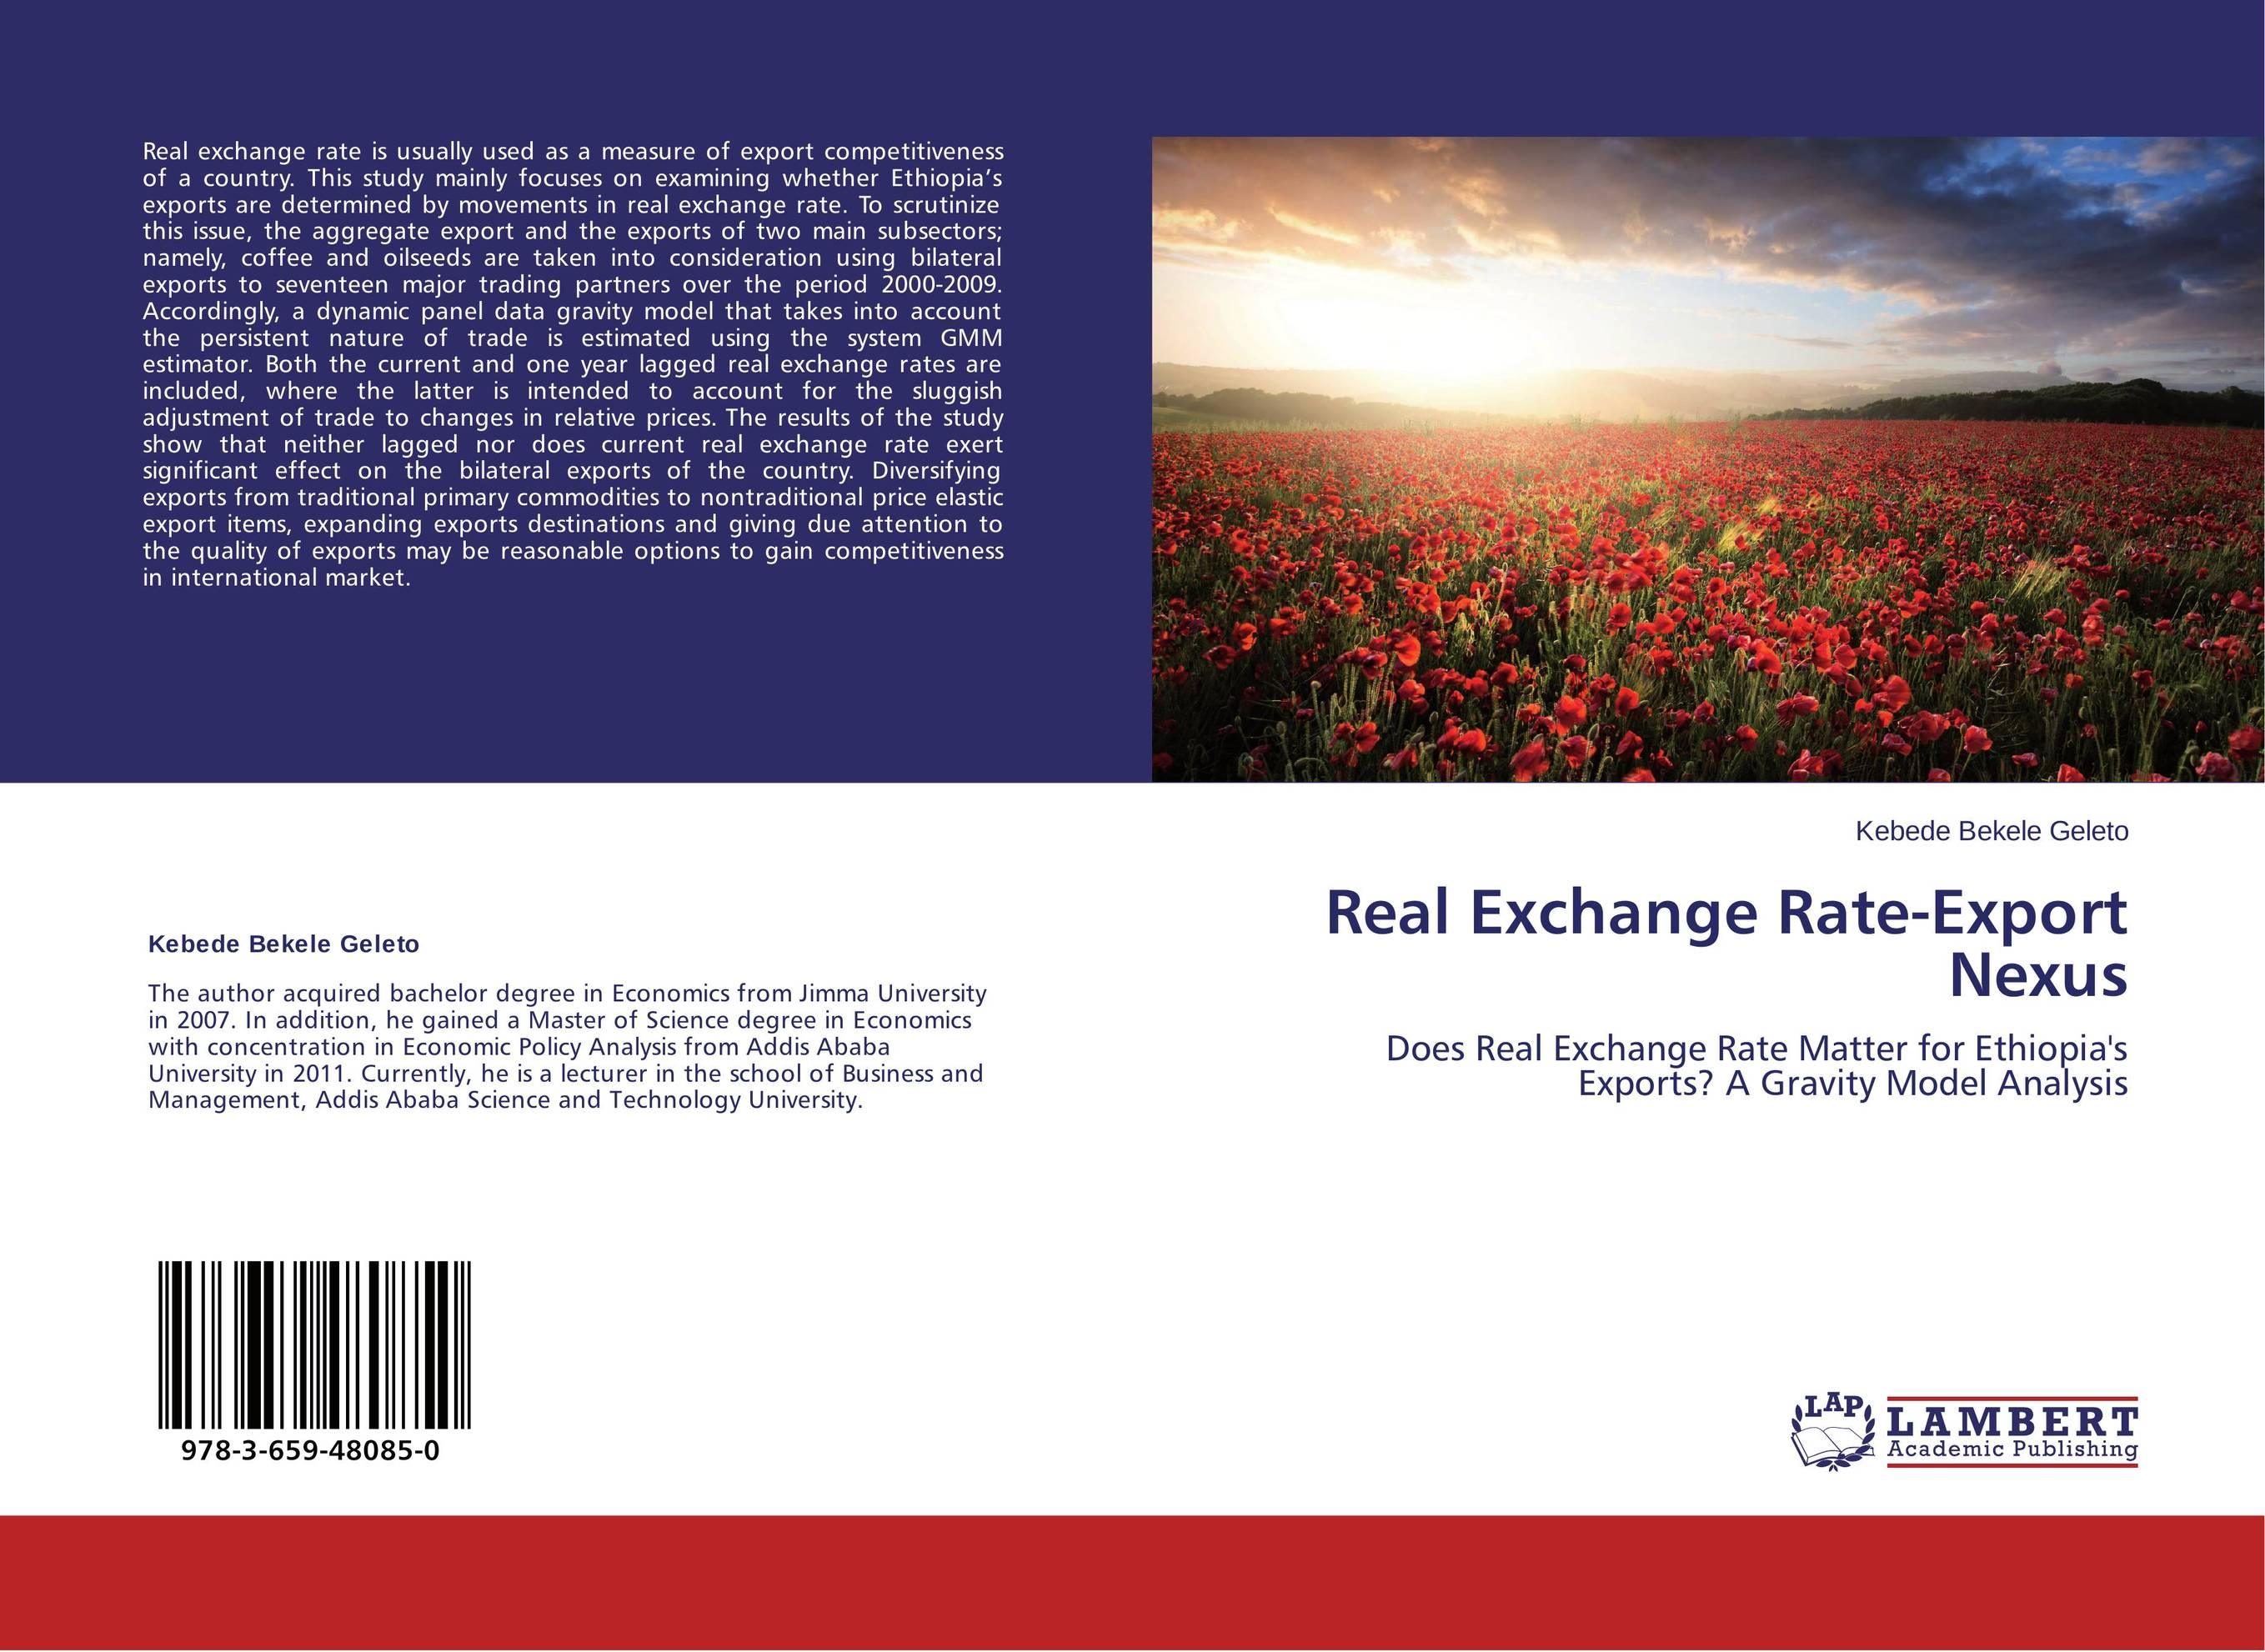 Real Exchange Rate-Export Nexus competitiveness of malaysian exports